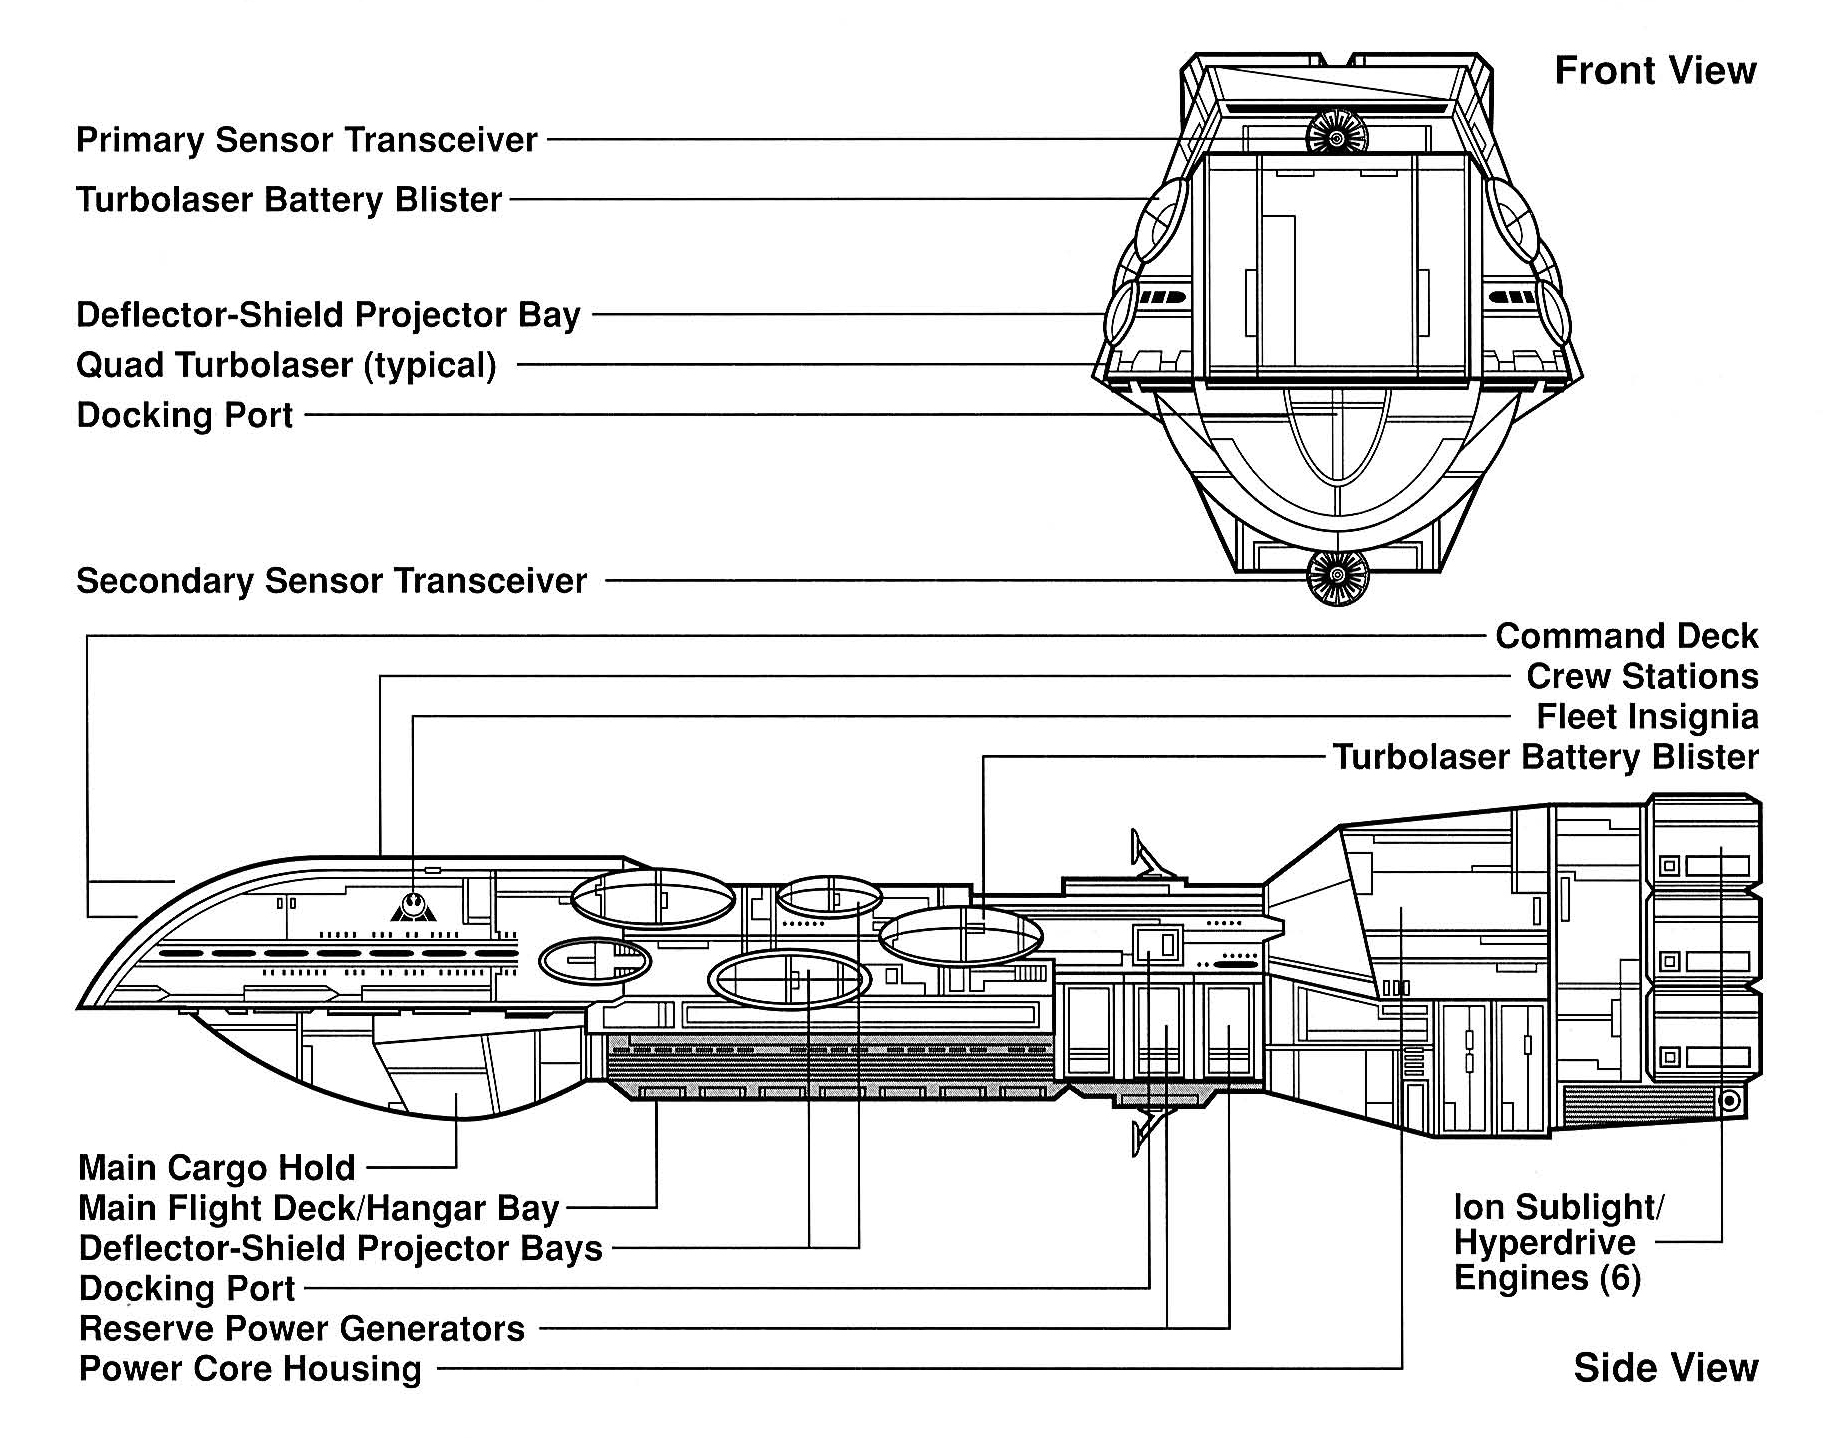 V Ship Schematics - Schematics Wiring Diagrams • Spaceship Schematic on spaceship graphics, spaceship technology, spaceship ideas, spaceship symbols, spaceship maps, spaceship designs, spaceship materials, spaceship diagrams,